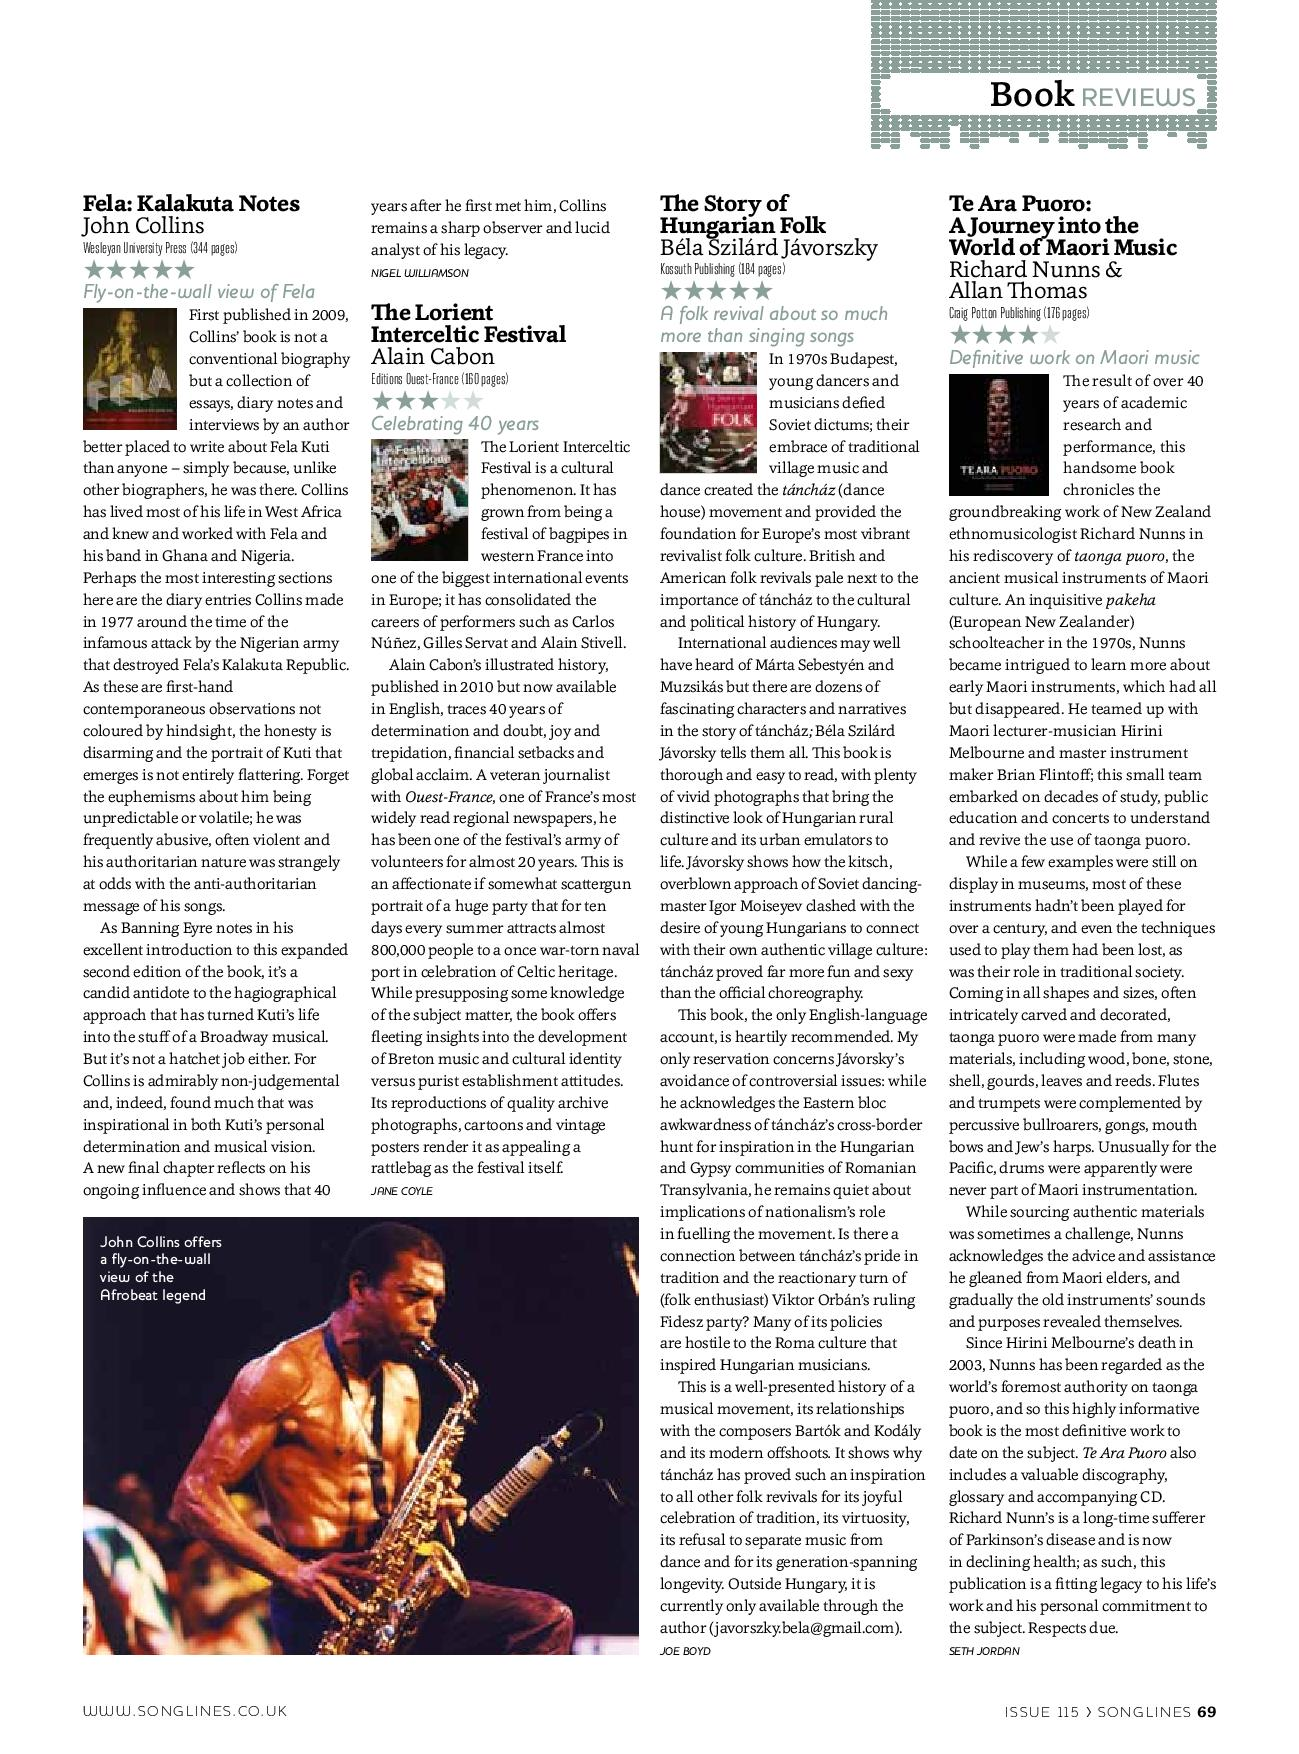 songlines_115books-page-001.jpg